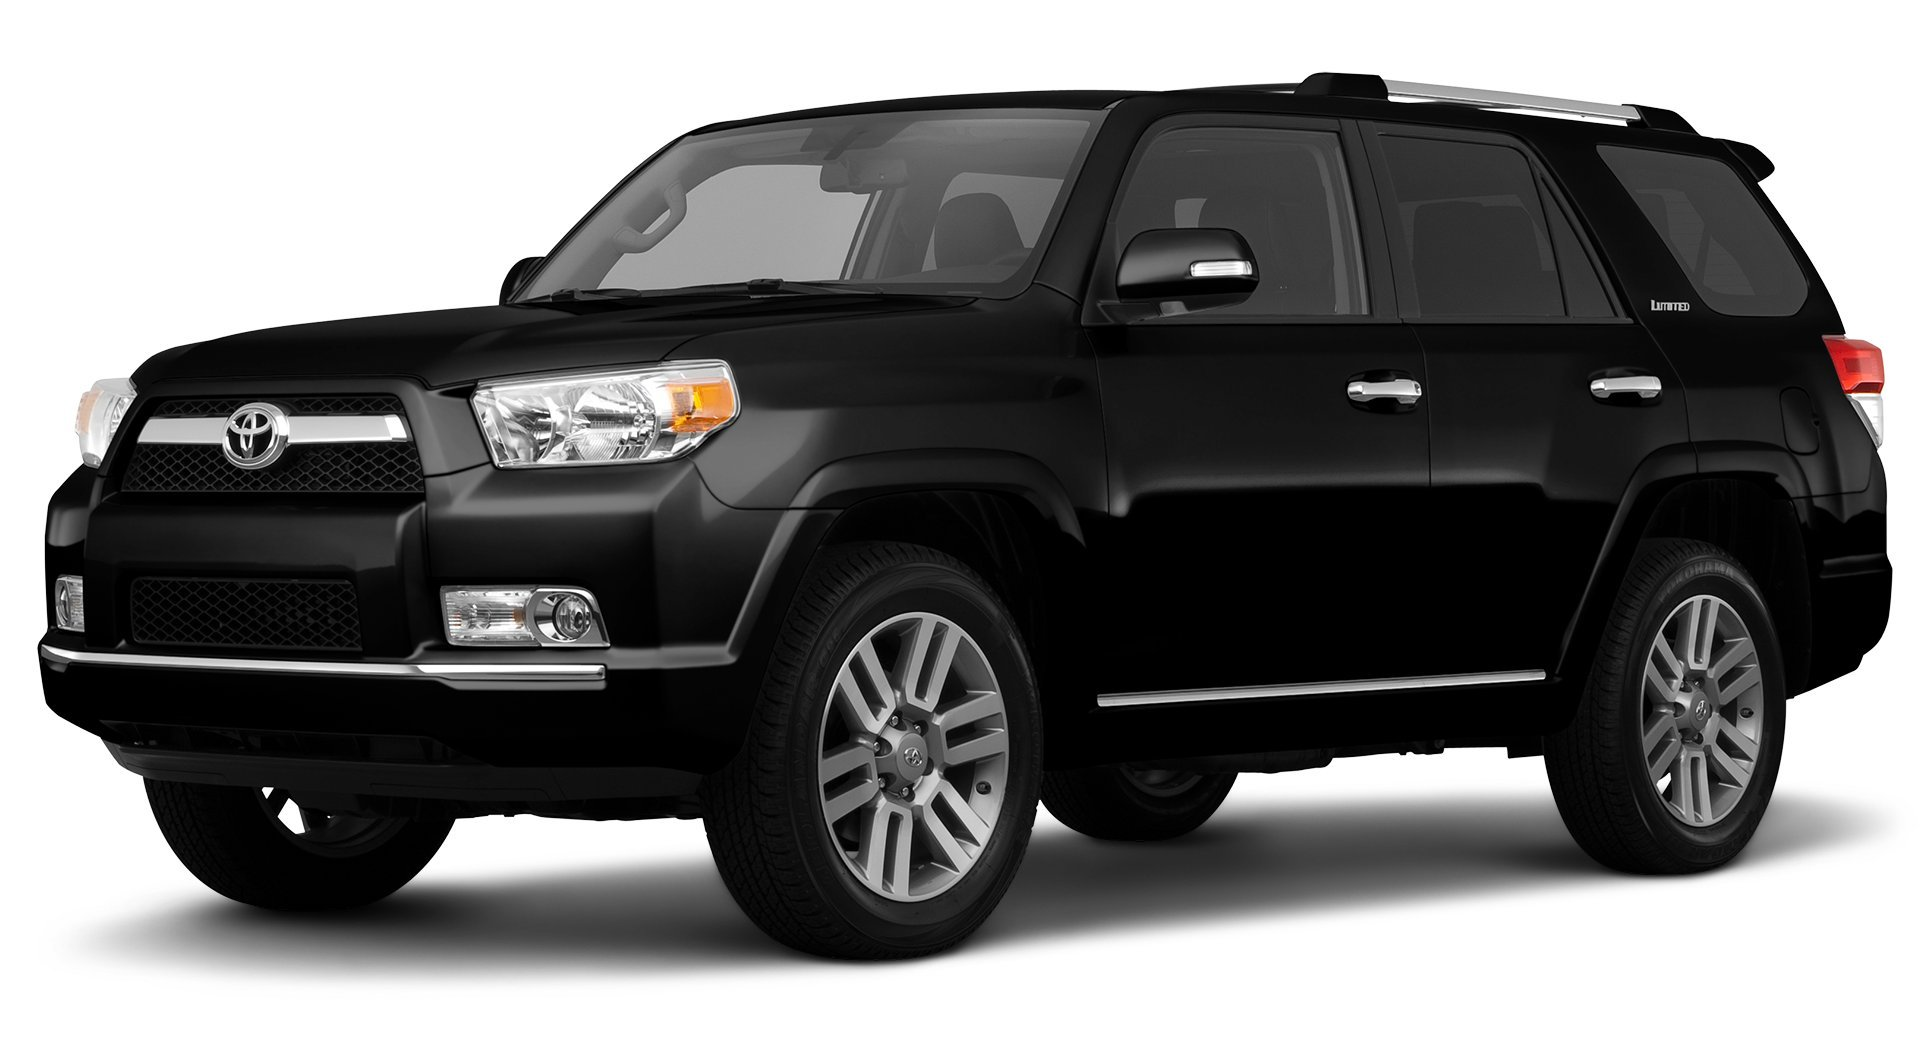 2011 toyota 4runner reviews images and specs vehicles. Black Bedroom Furniture Sets. Home Design Ideas